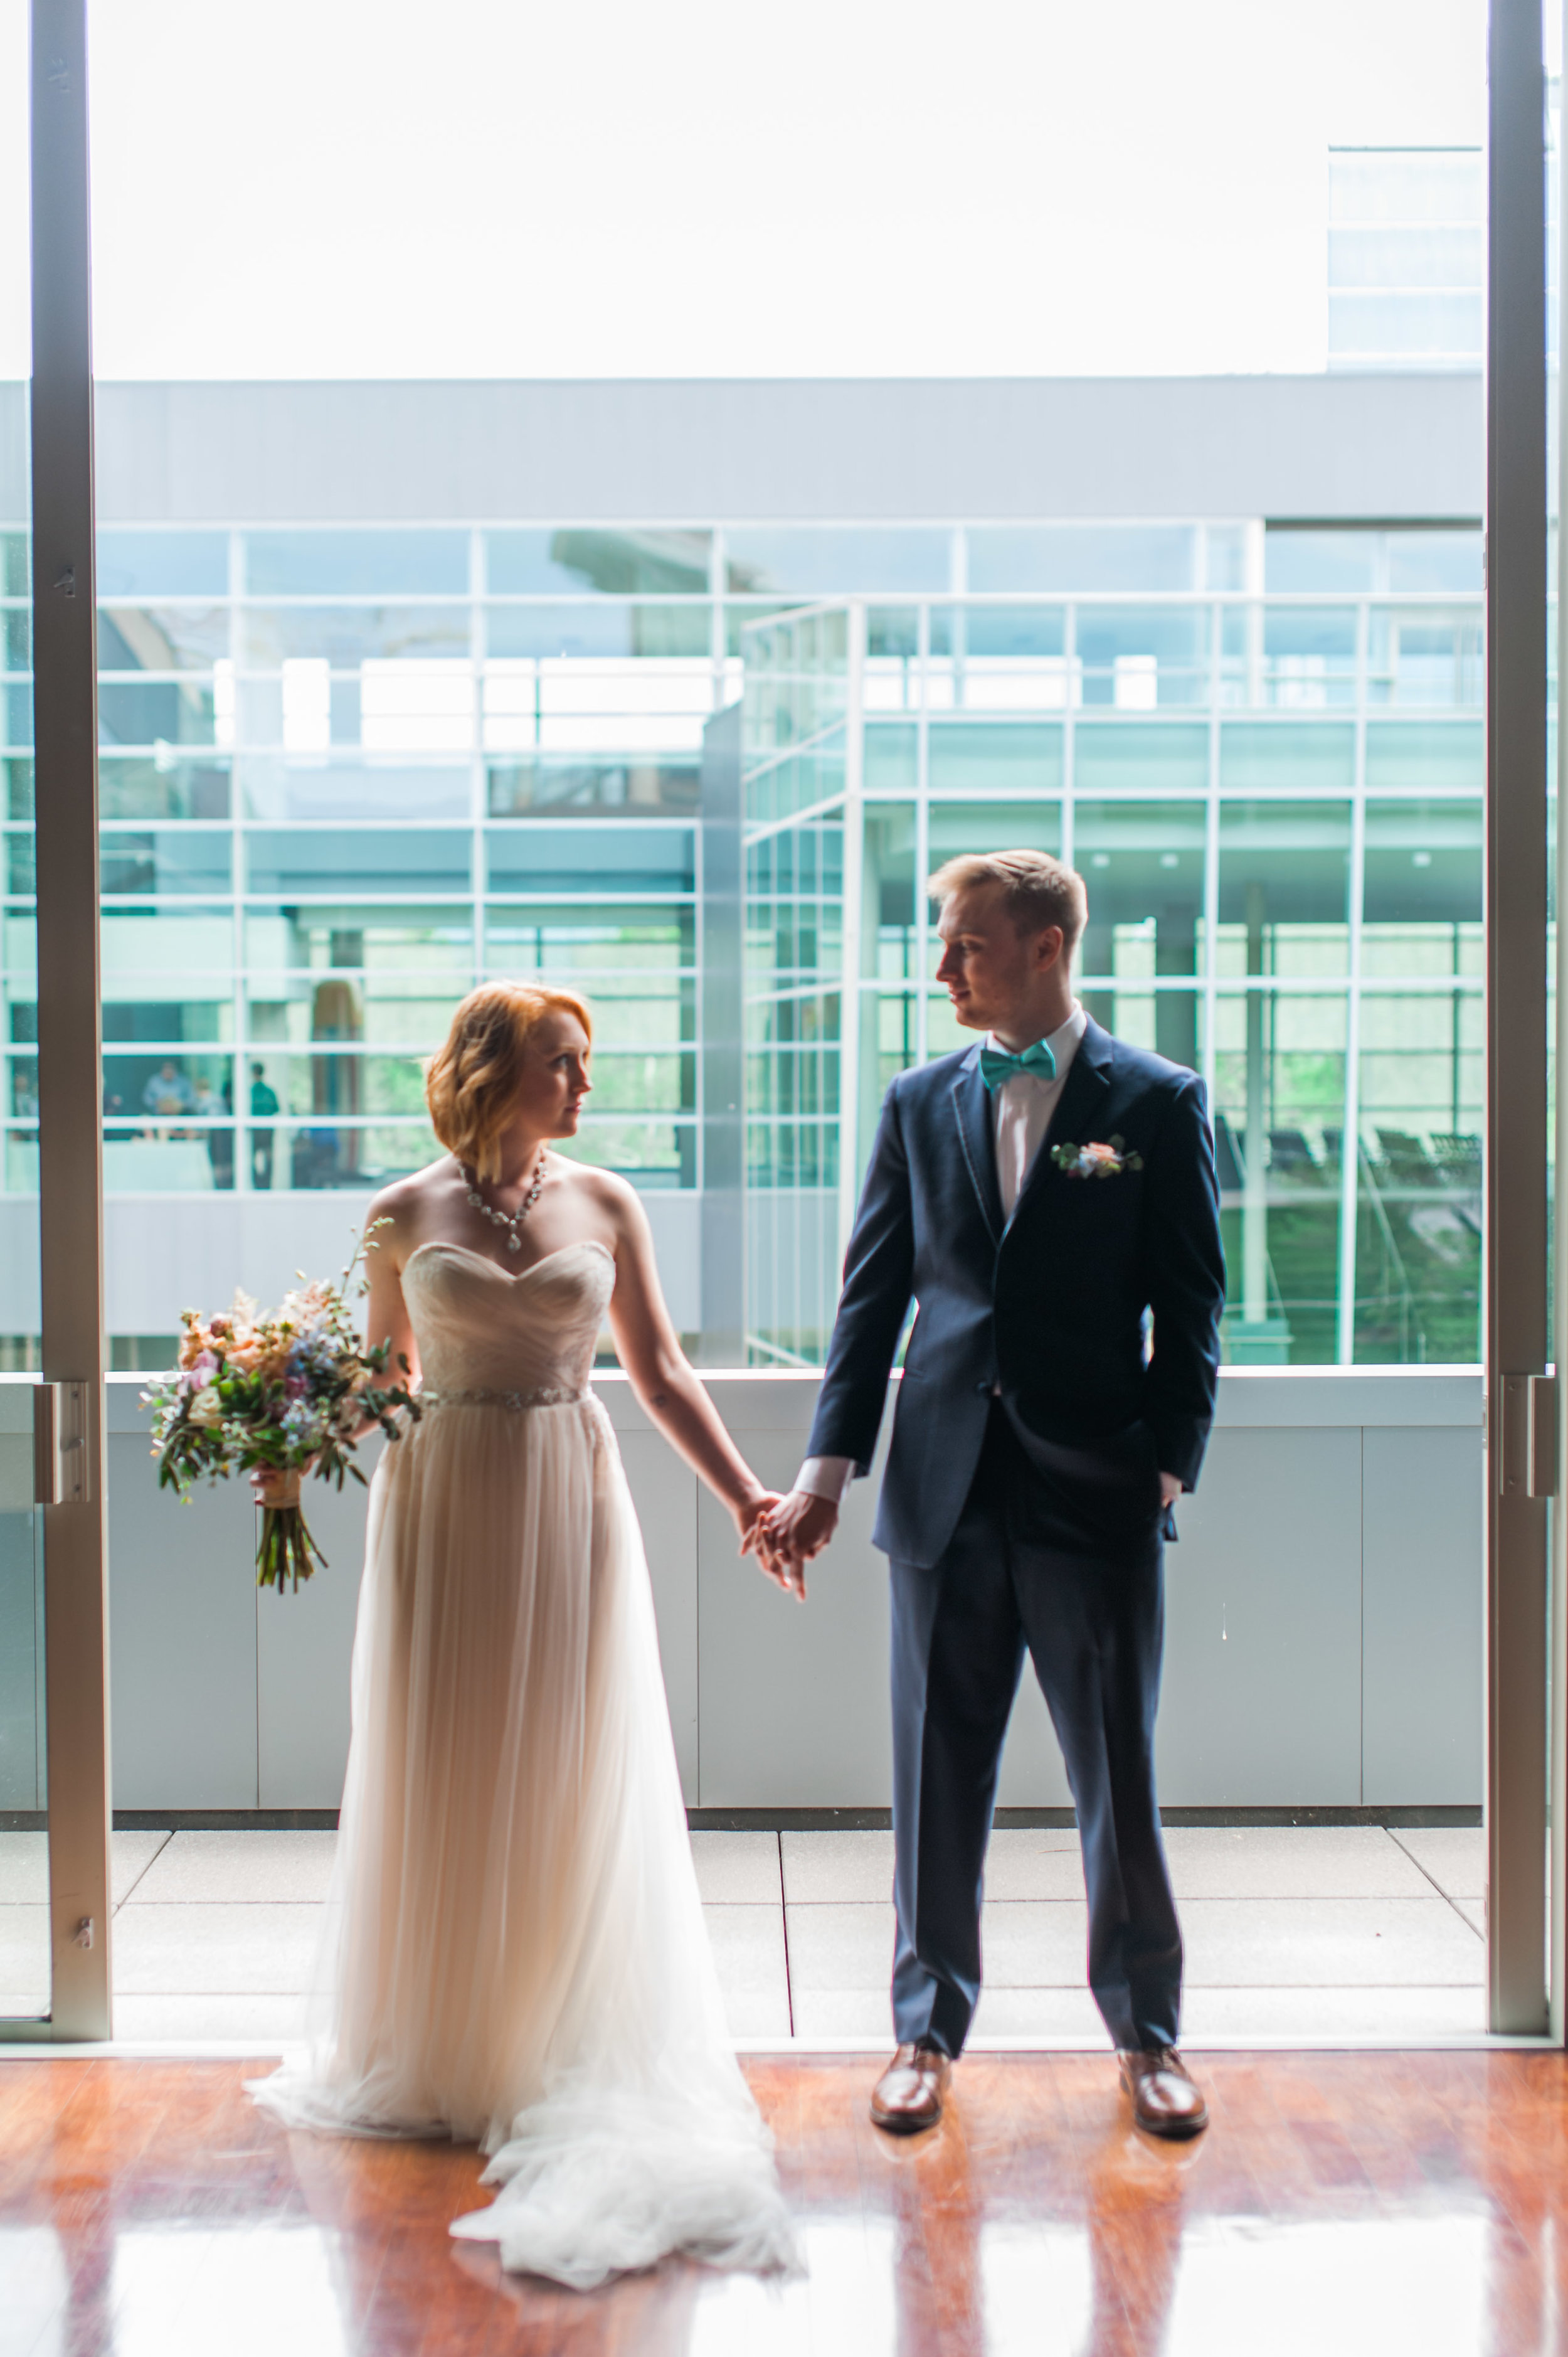 omaha-holland-arts-center-wedding-38.jpg